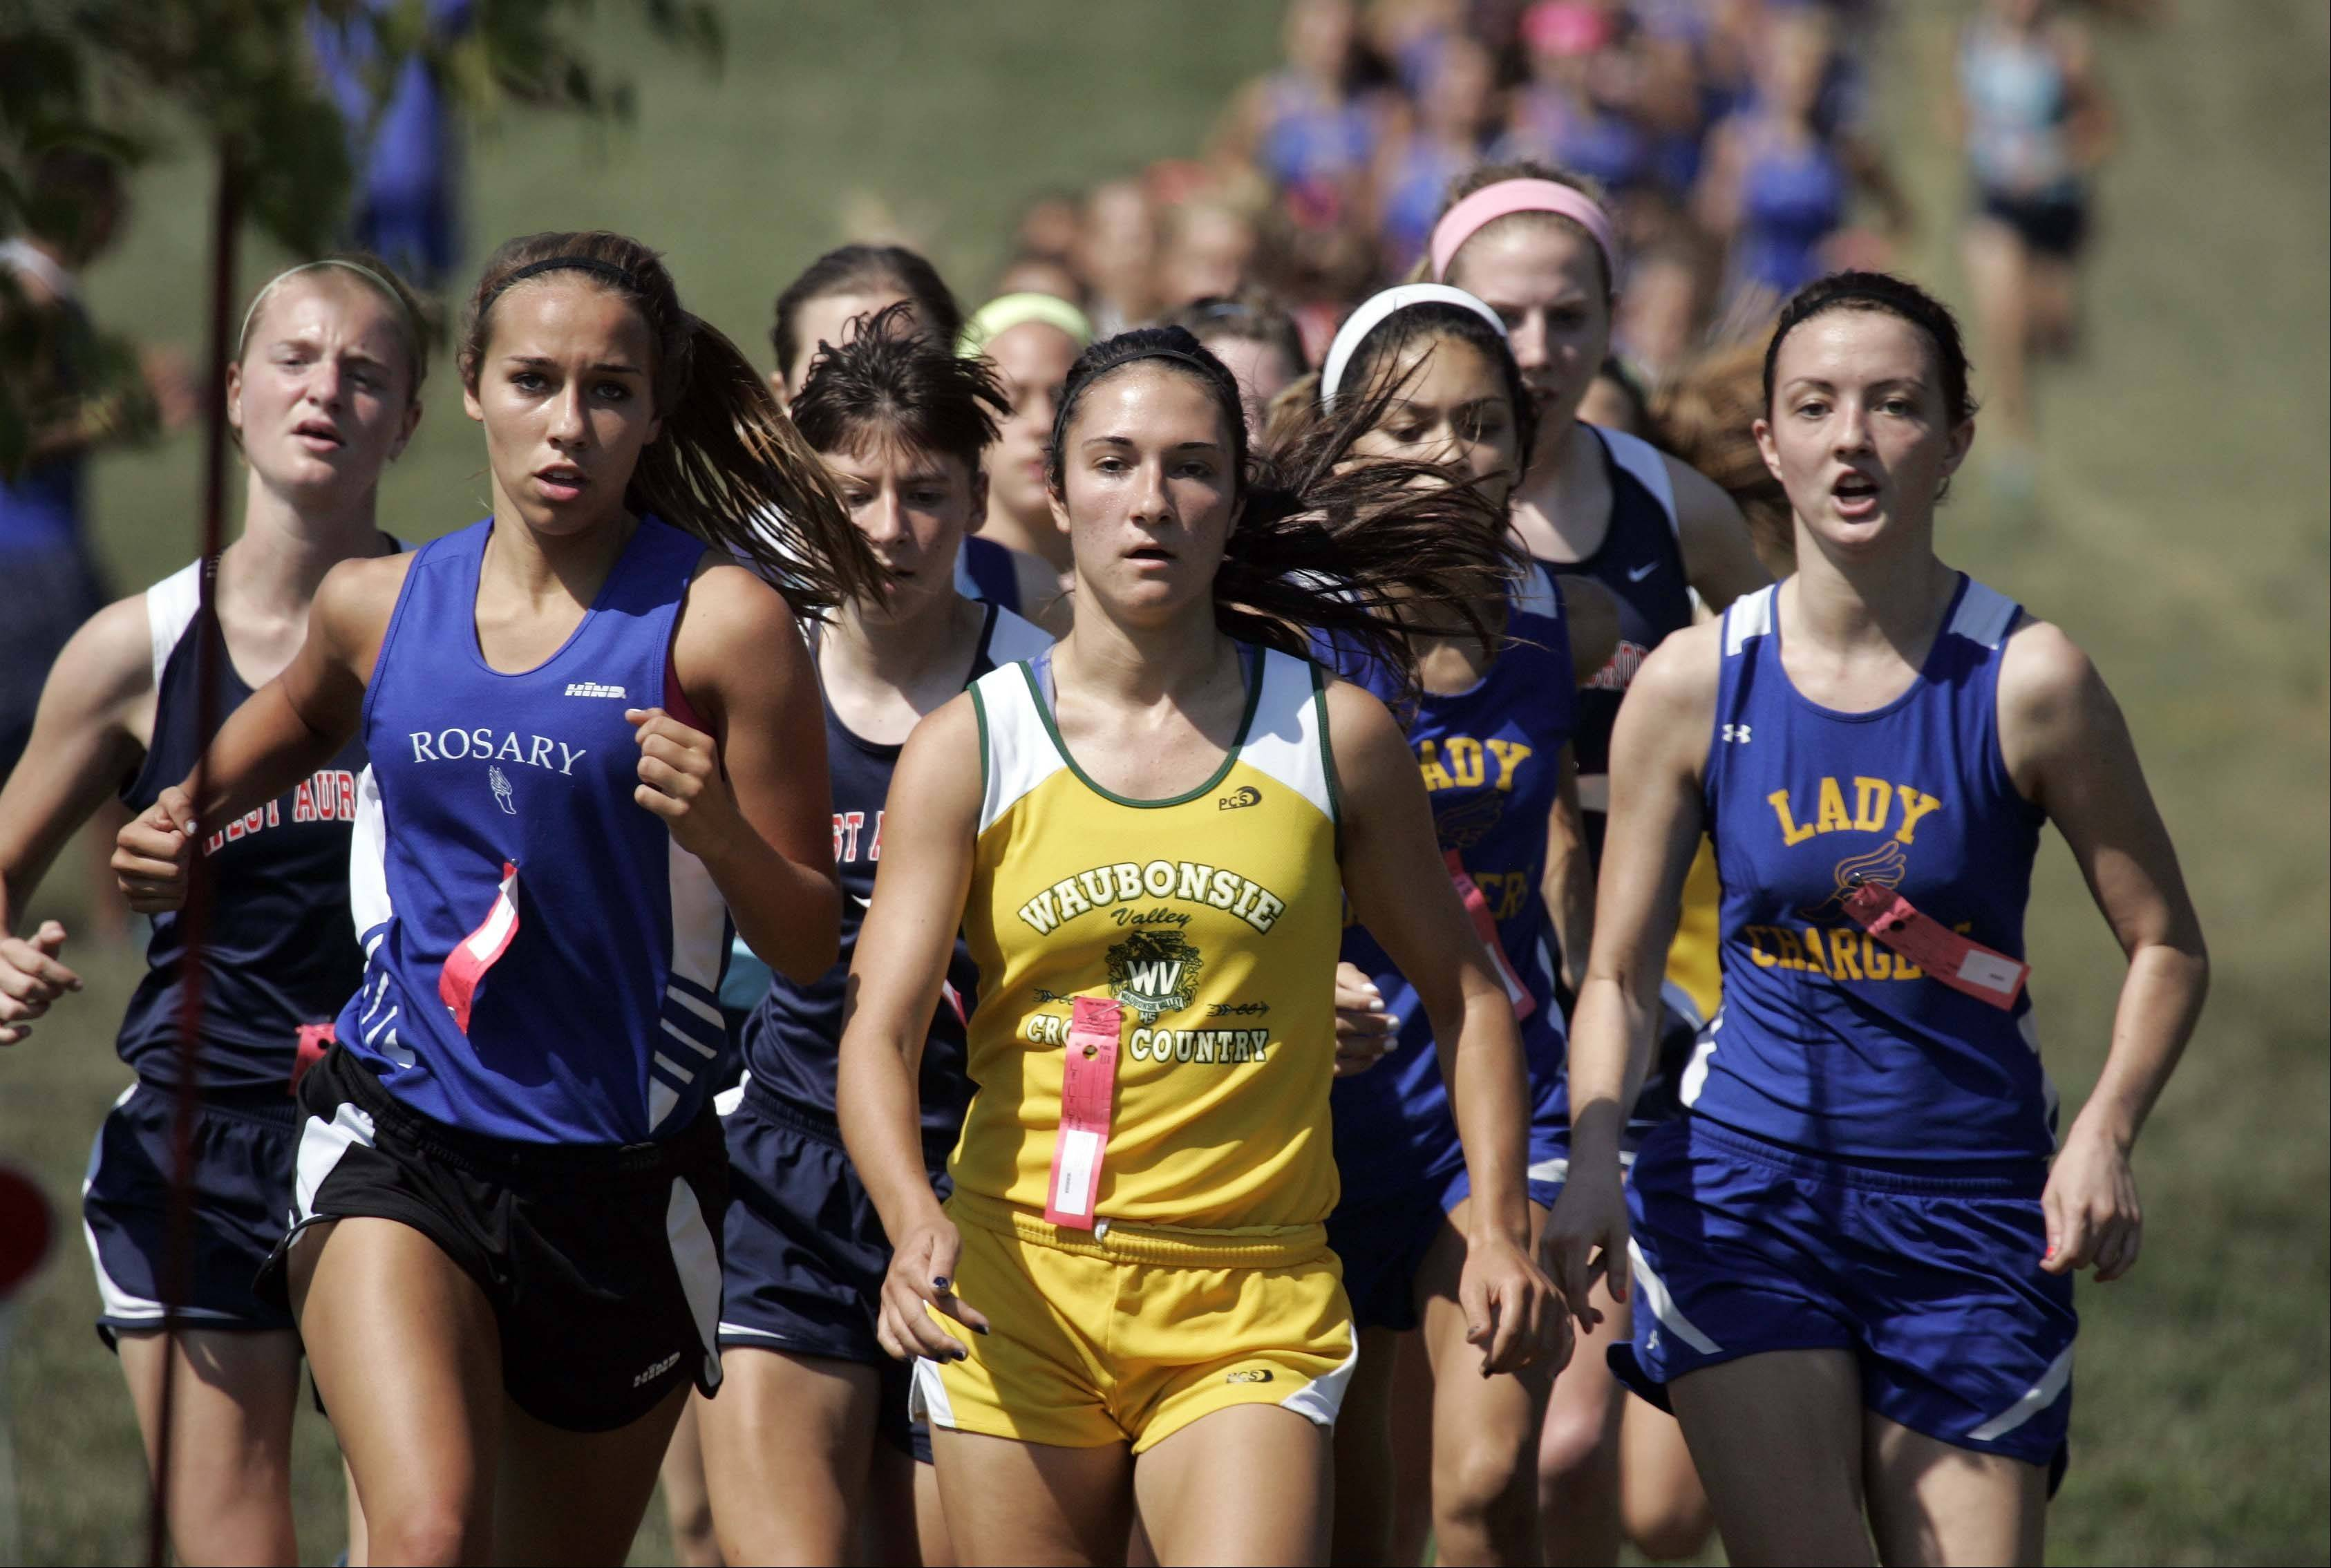 Waubonsie Valley's Ashley Bruner, center, on her way to victory at the Aurora girls cross county meet at Marmion Saturday August 25, 2012.